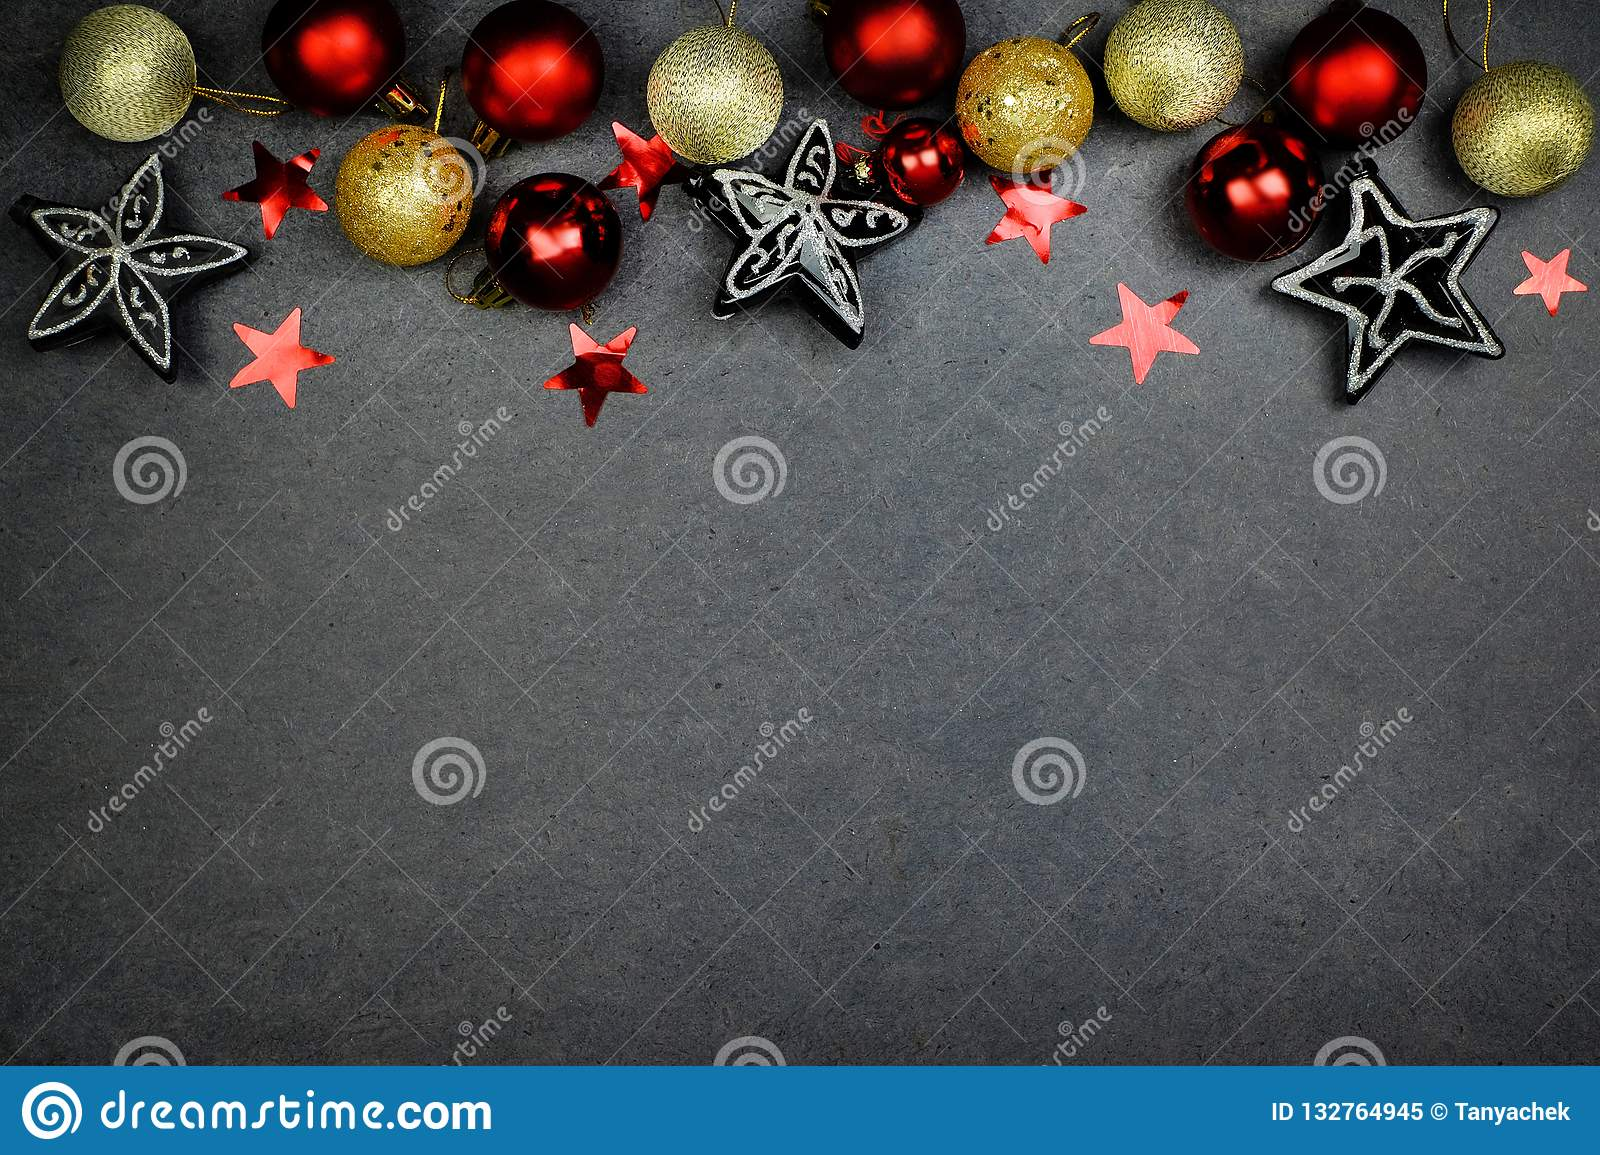 61f2dfcbc254 Christmas decoration, red balls and black silver stars on the white  background. Flat lay. Copy space. Top view.